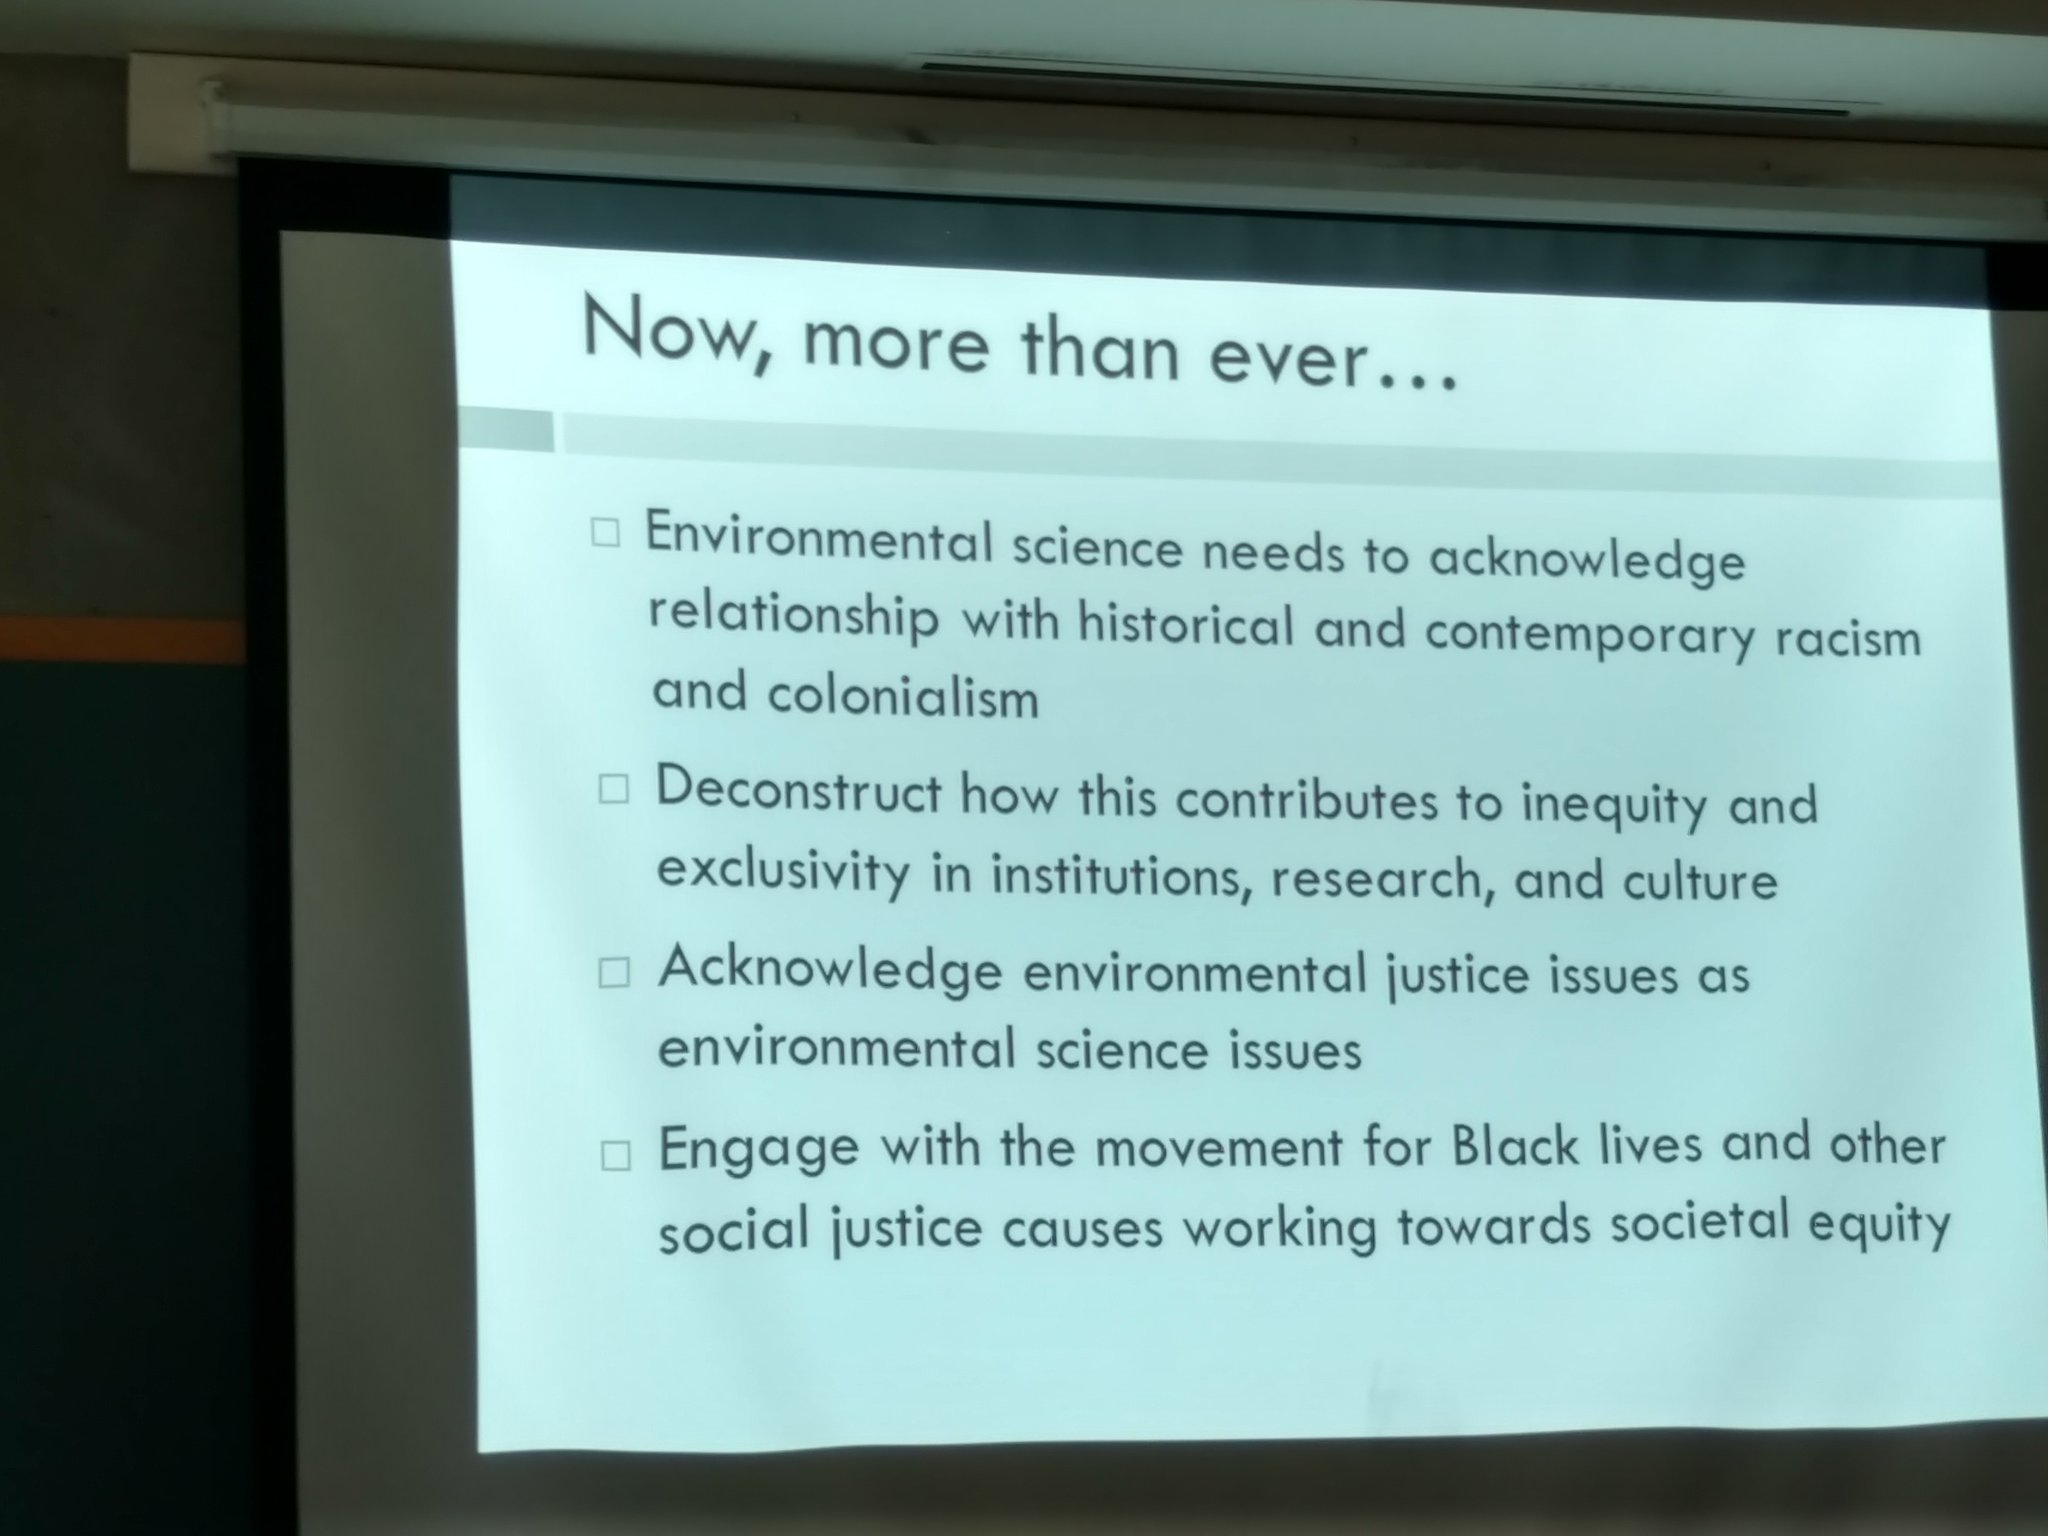 #Environmentaljustice needs to be acknowledged as environmental science issues.Who are we bringing to the table?@cynth_malone #BLACKandSTEM https://t.co/tD9vetgslG